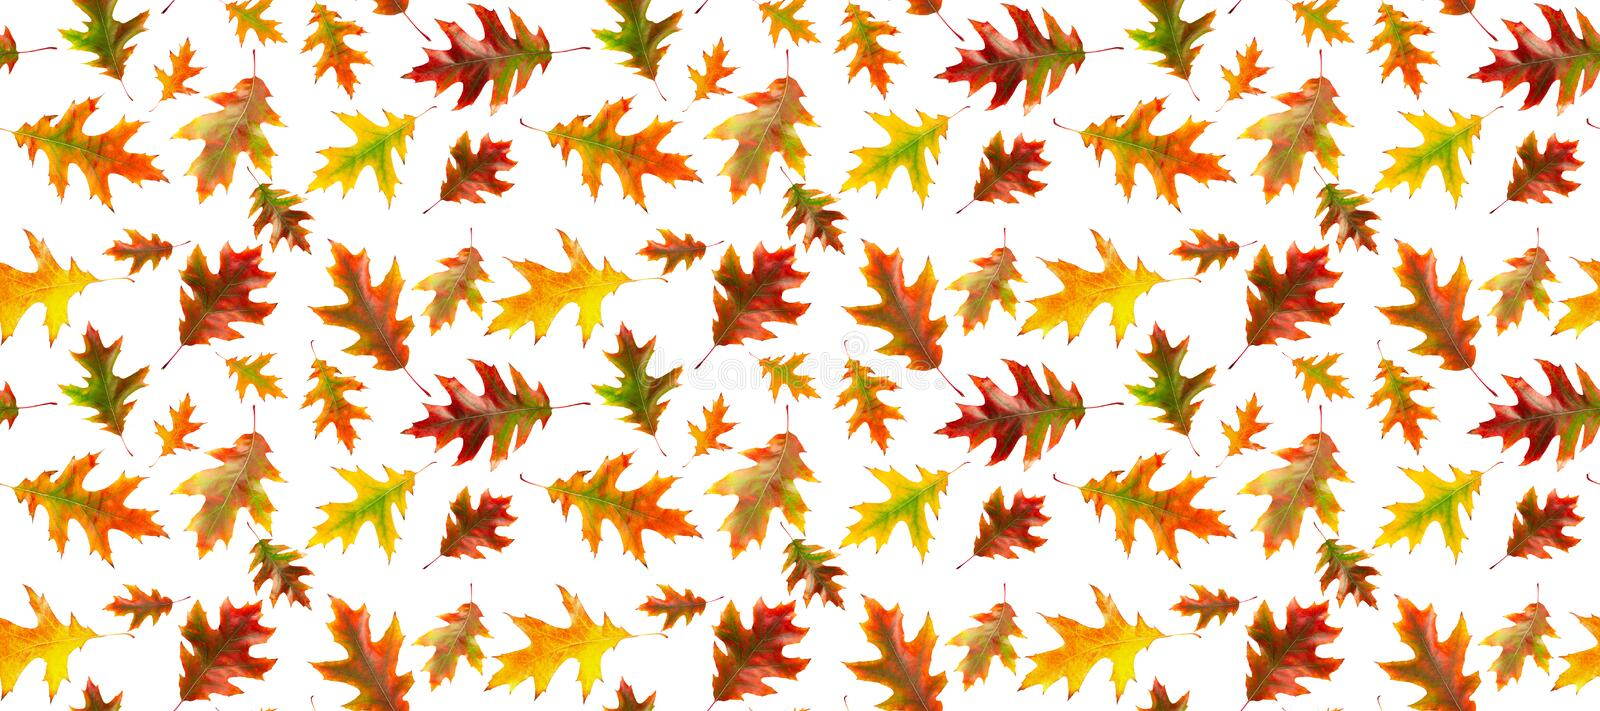 Seamless pattern of autumn oak leaves isolated on a white background. Bright multi-colored oak leaves. Banner. Seamless pattern of autumn oak leaves isolated on royalty free illustration